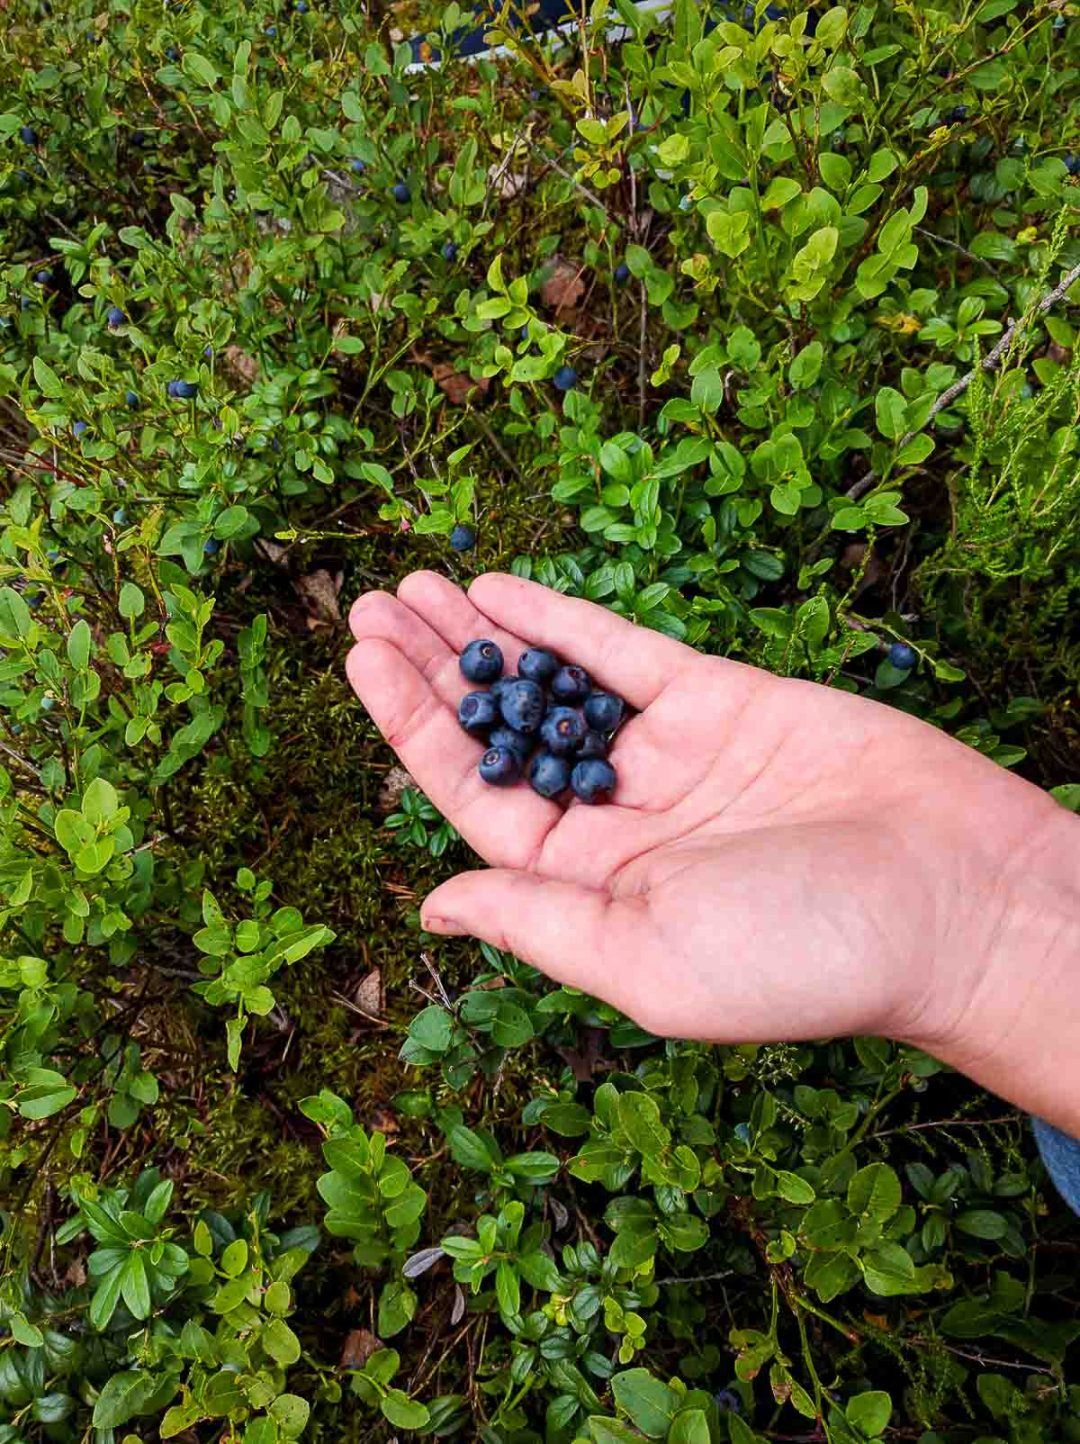 A handful of wild blueberries.